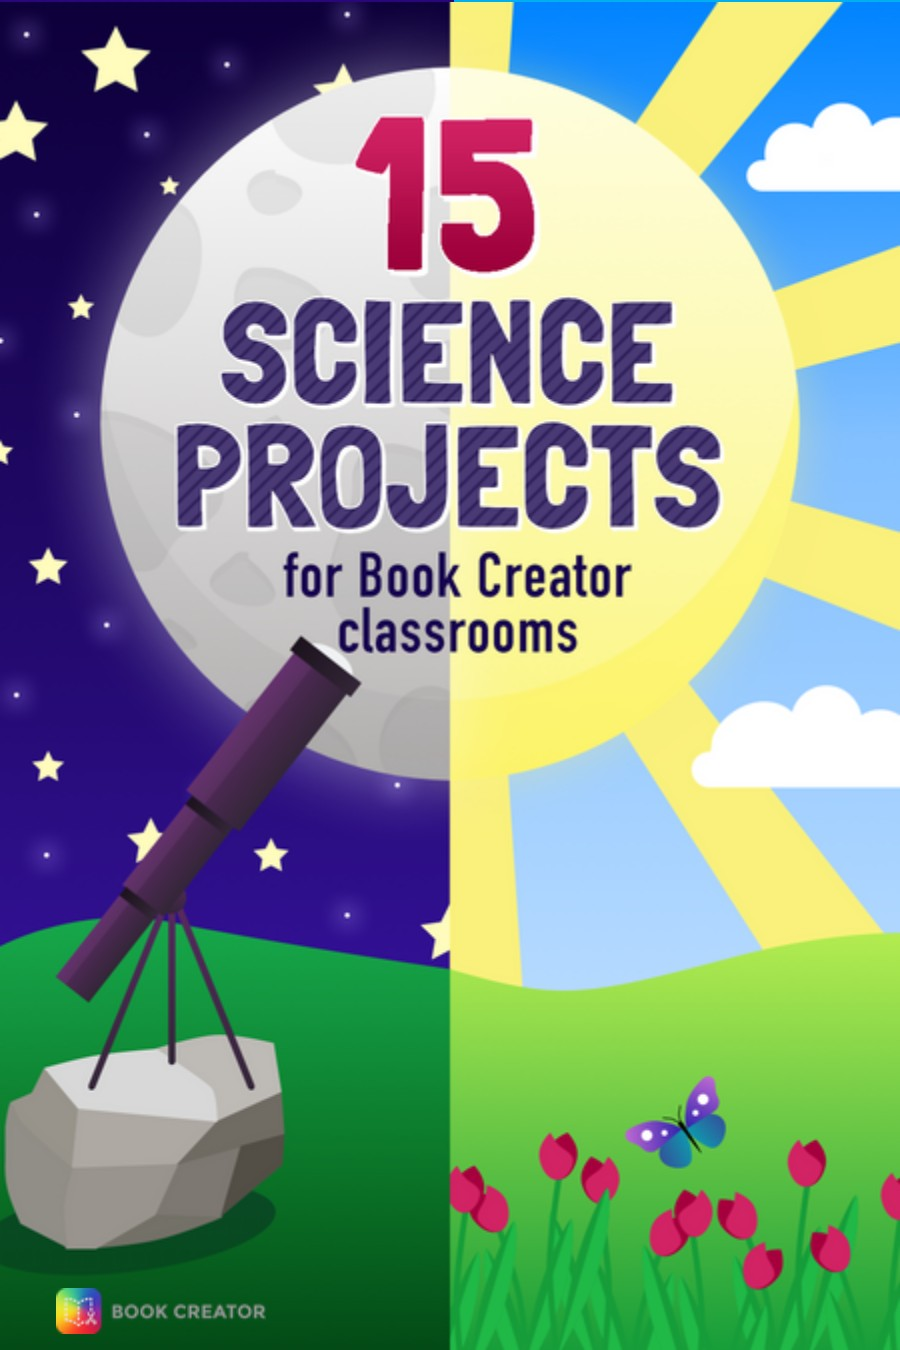 15 Science Projects for Book Creator Classrooms